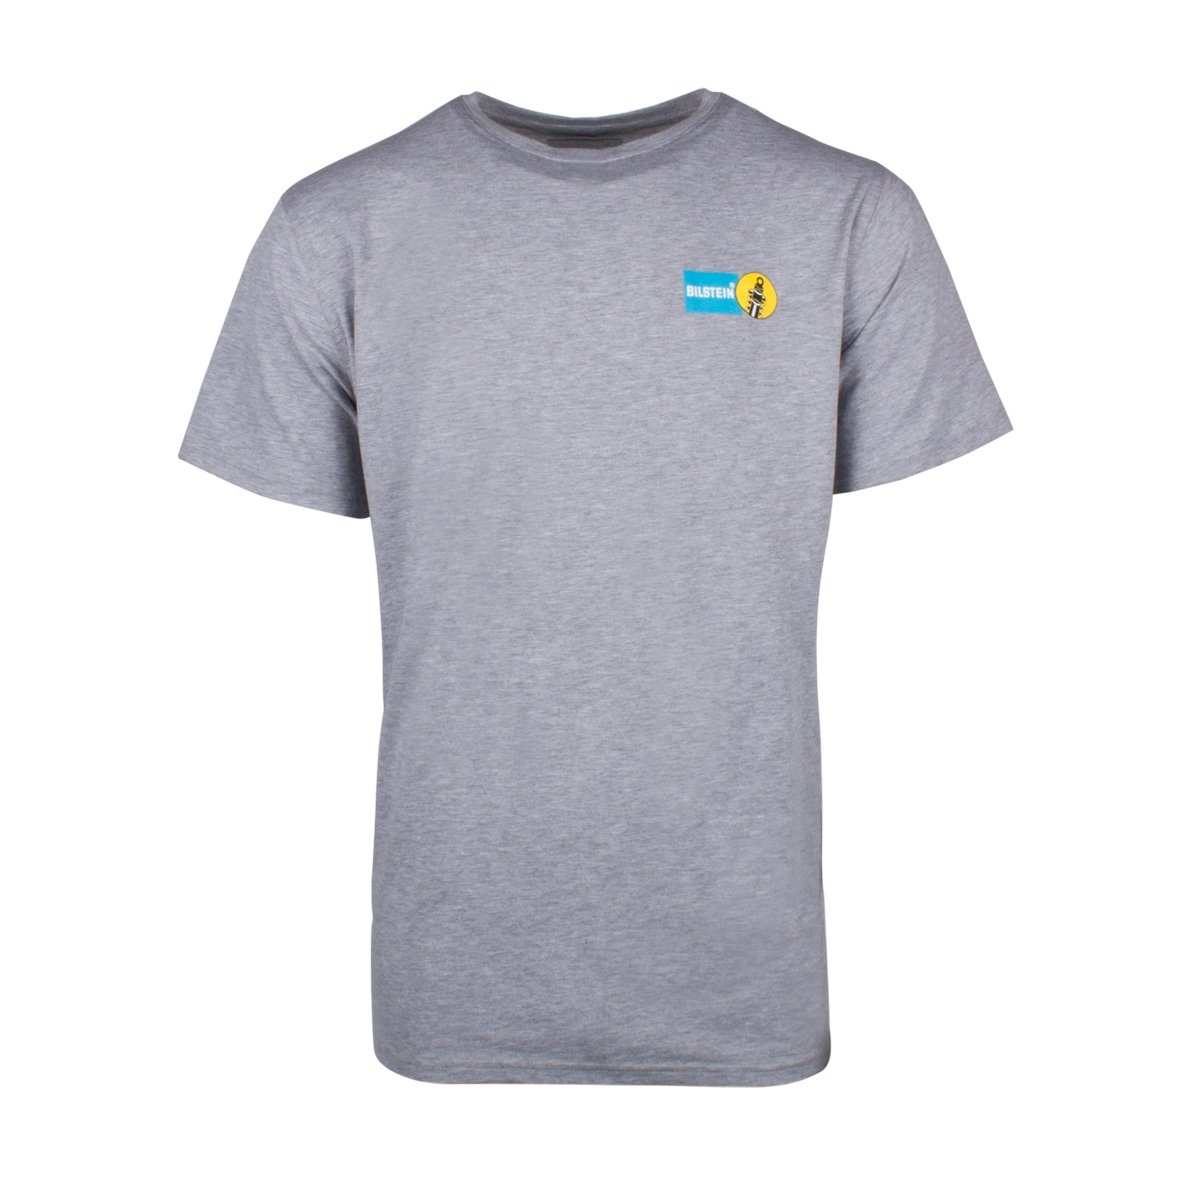 BILSTEIN-T-Shirt Drive the Legend